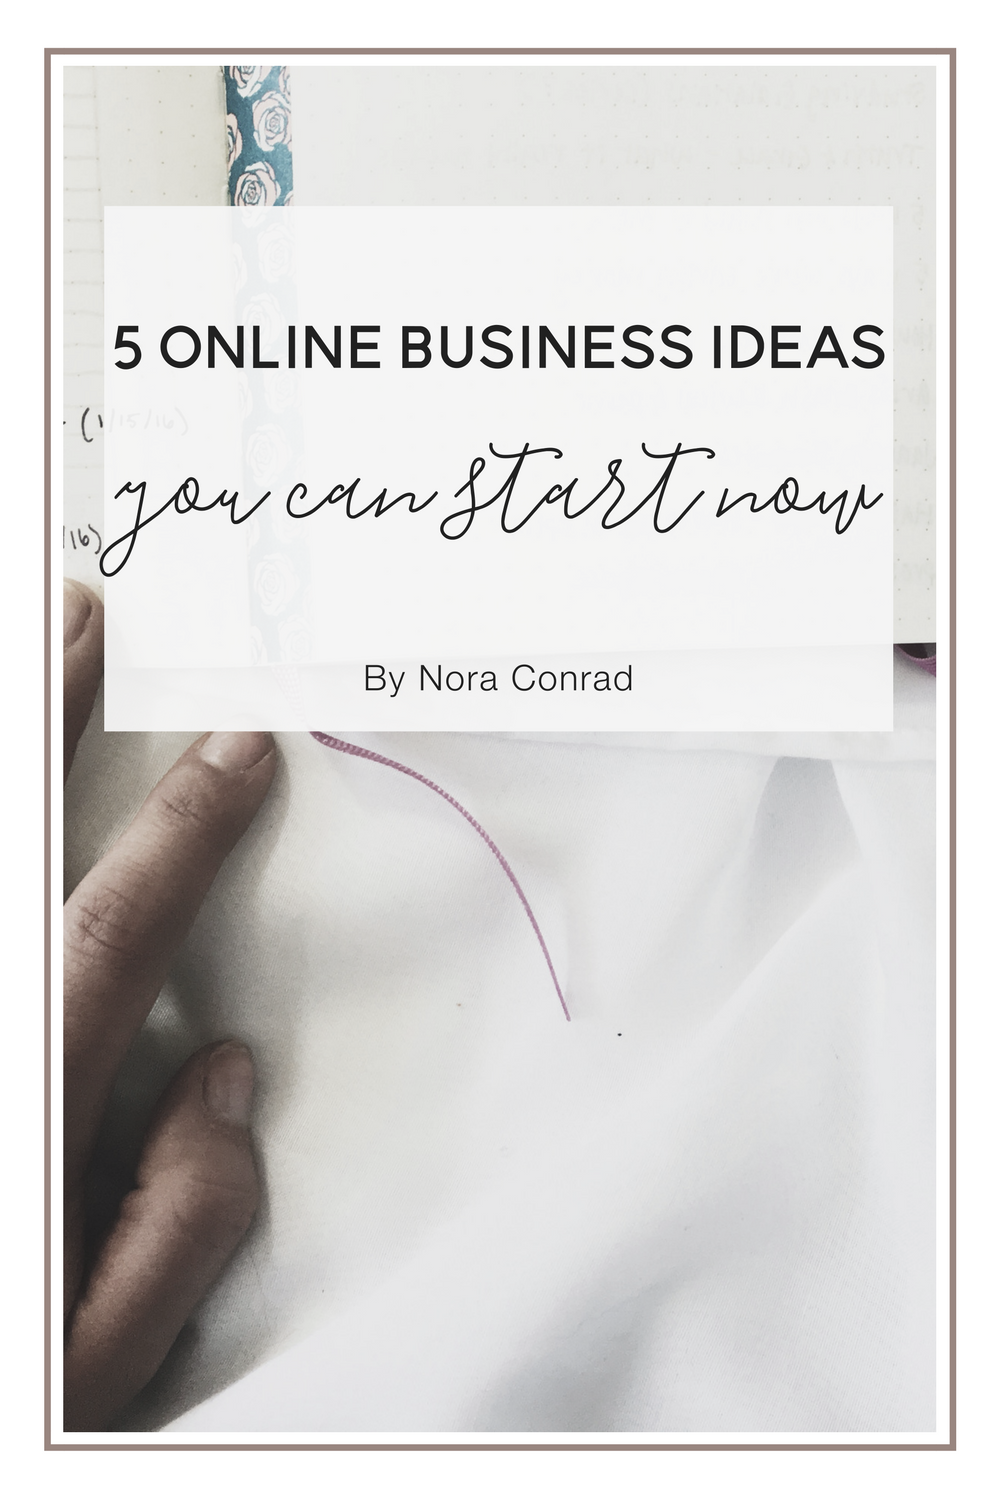 5 ways to make money online that anyone can do. Broken down into 5 categories and then details and ideas under each. Online business ideas made simple.